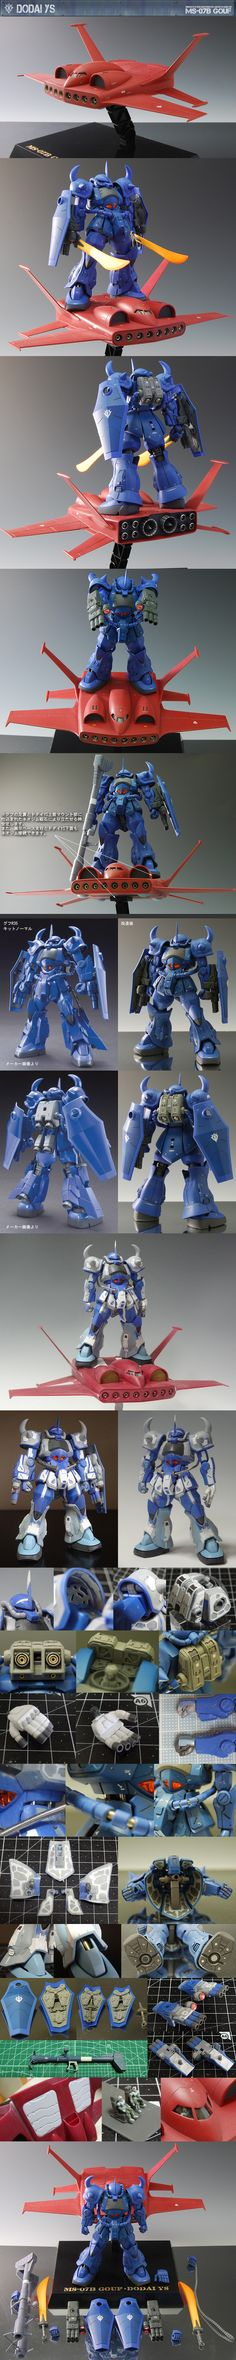 Amazing Remodeling Work! 1/144 GOUF R35 + DODAI YS. Work by STYLE-S Full Photoreview Hi Res Images http://www.gunjap.net/site/?p=203495